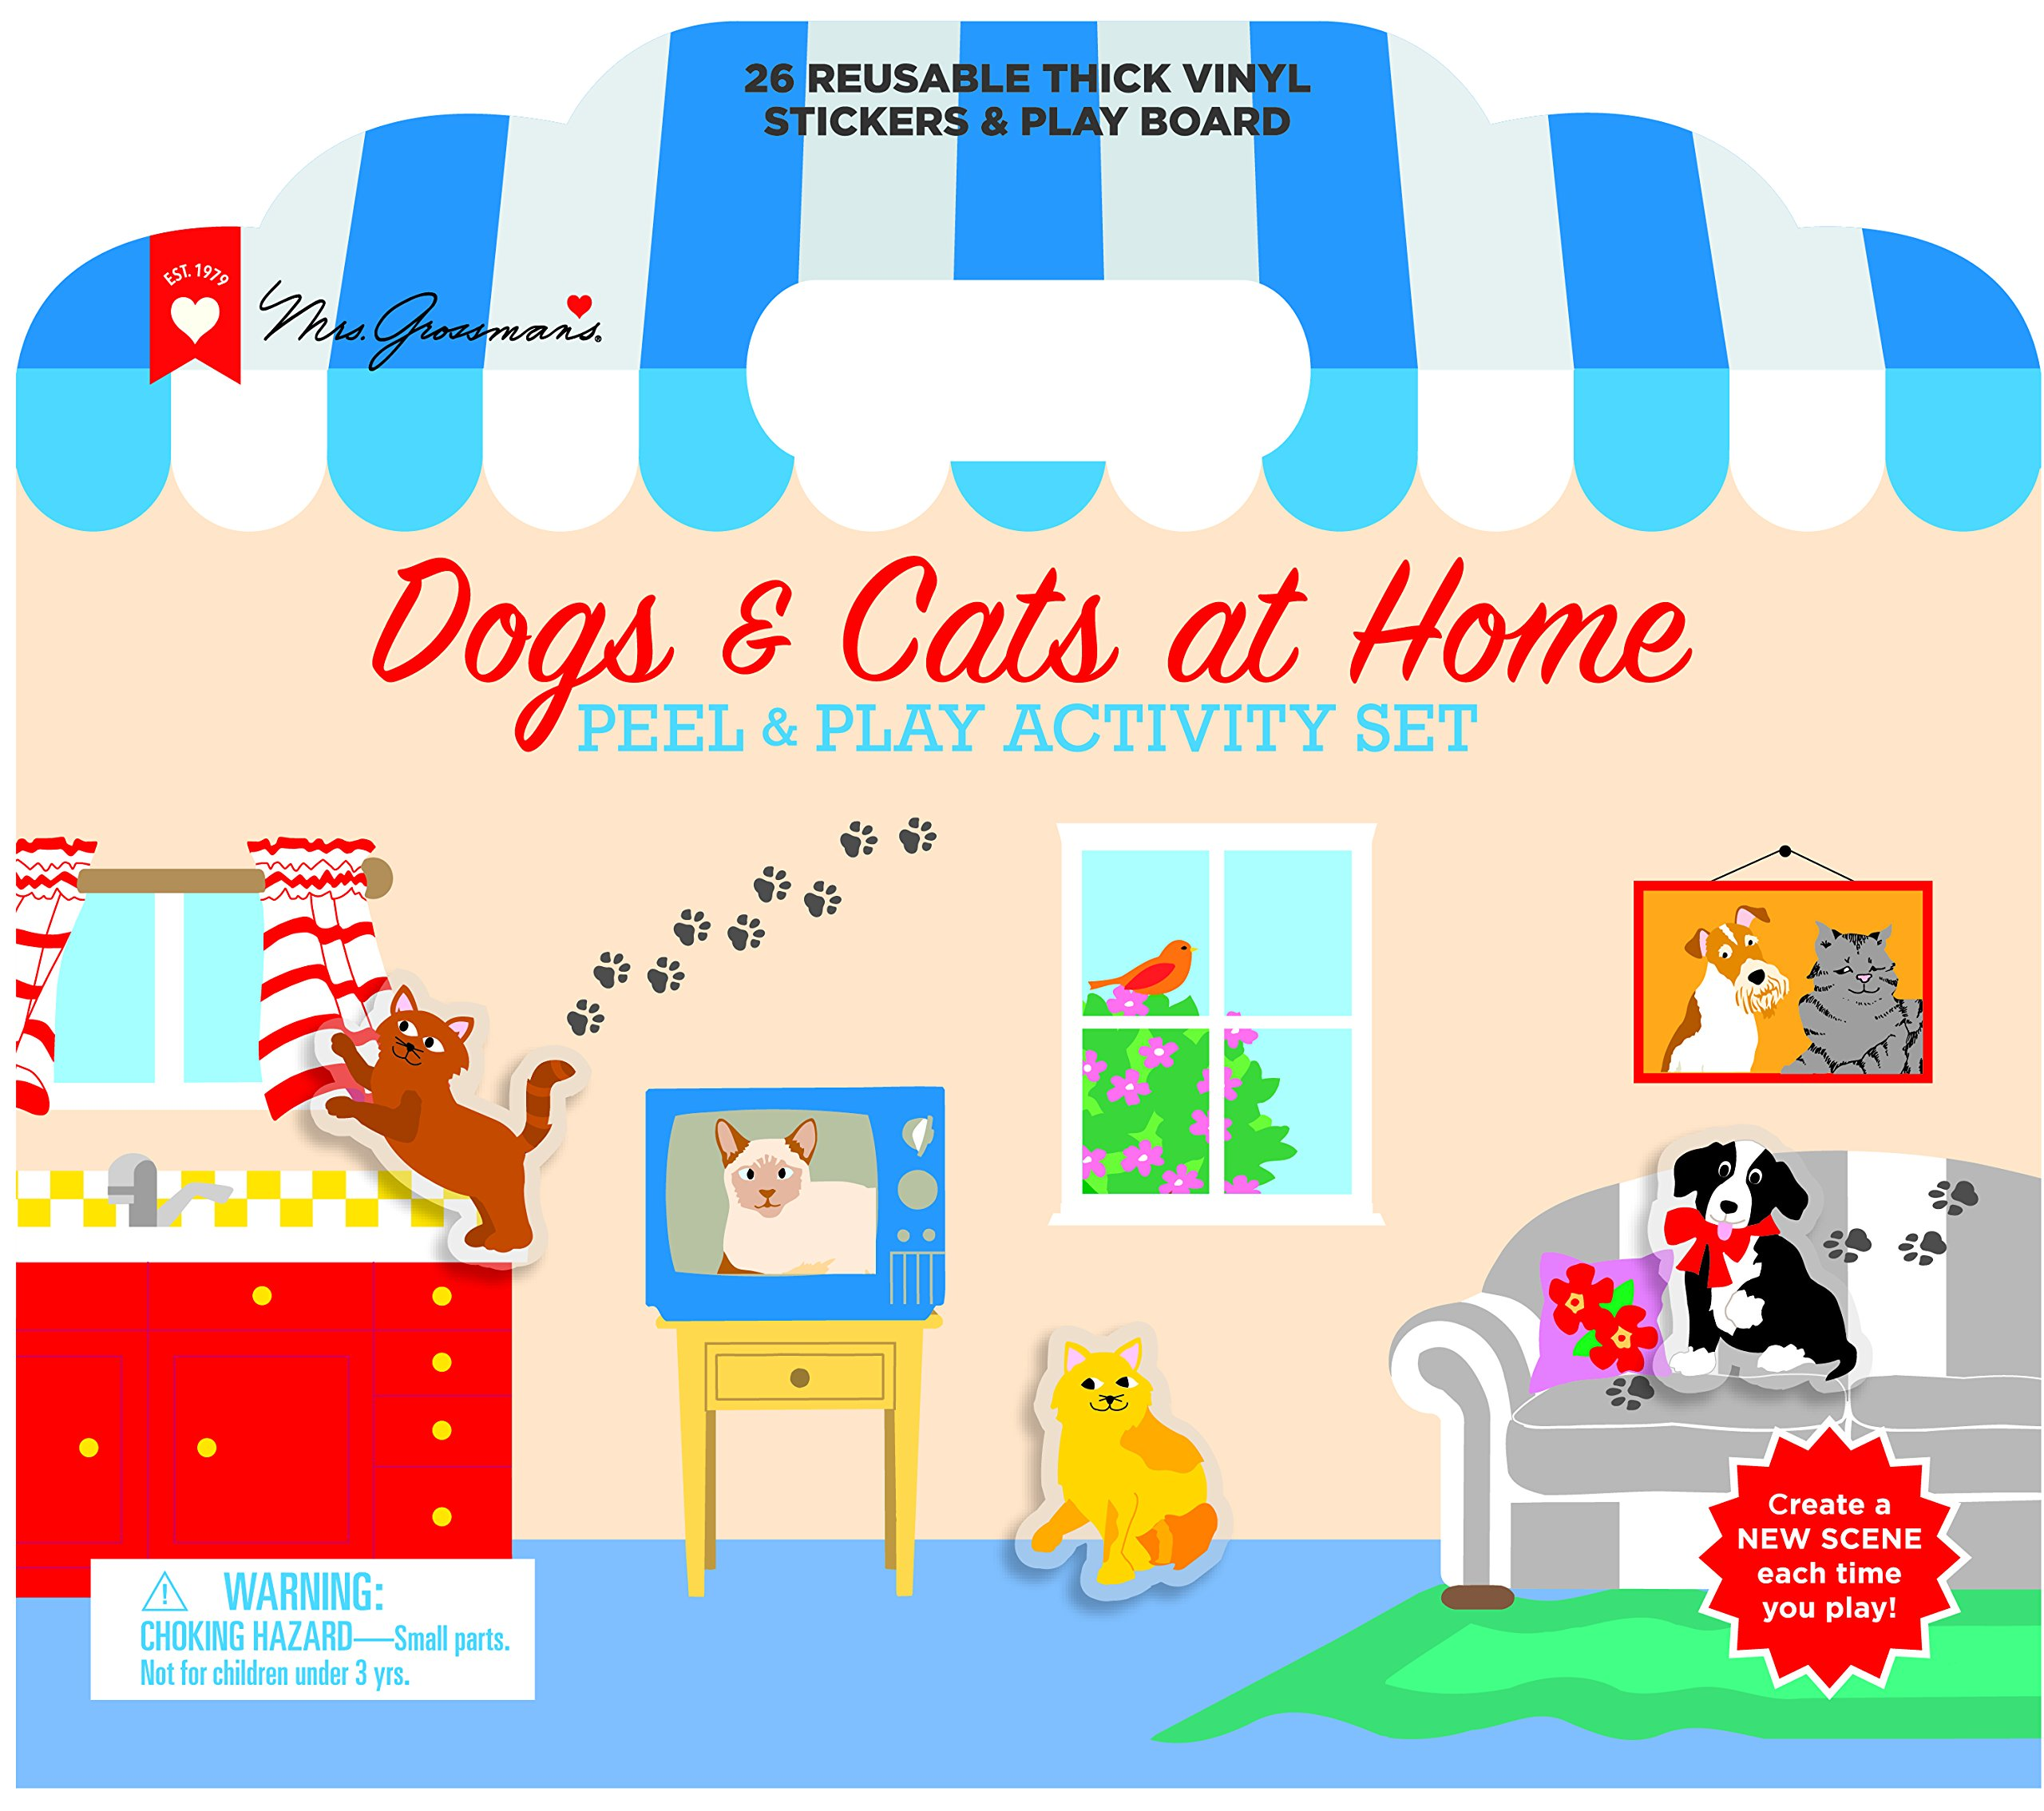 Mrs. Grossman's - Dogs & Cats At Home - Peel & Play Kids Activity Set with Reusable Vinyl Stickers & Fold-Out Story Board - with Storage & Travel Handle - For Boys & Girls Ages 3 & Up